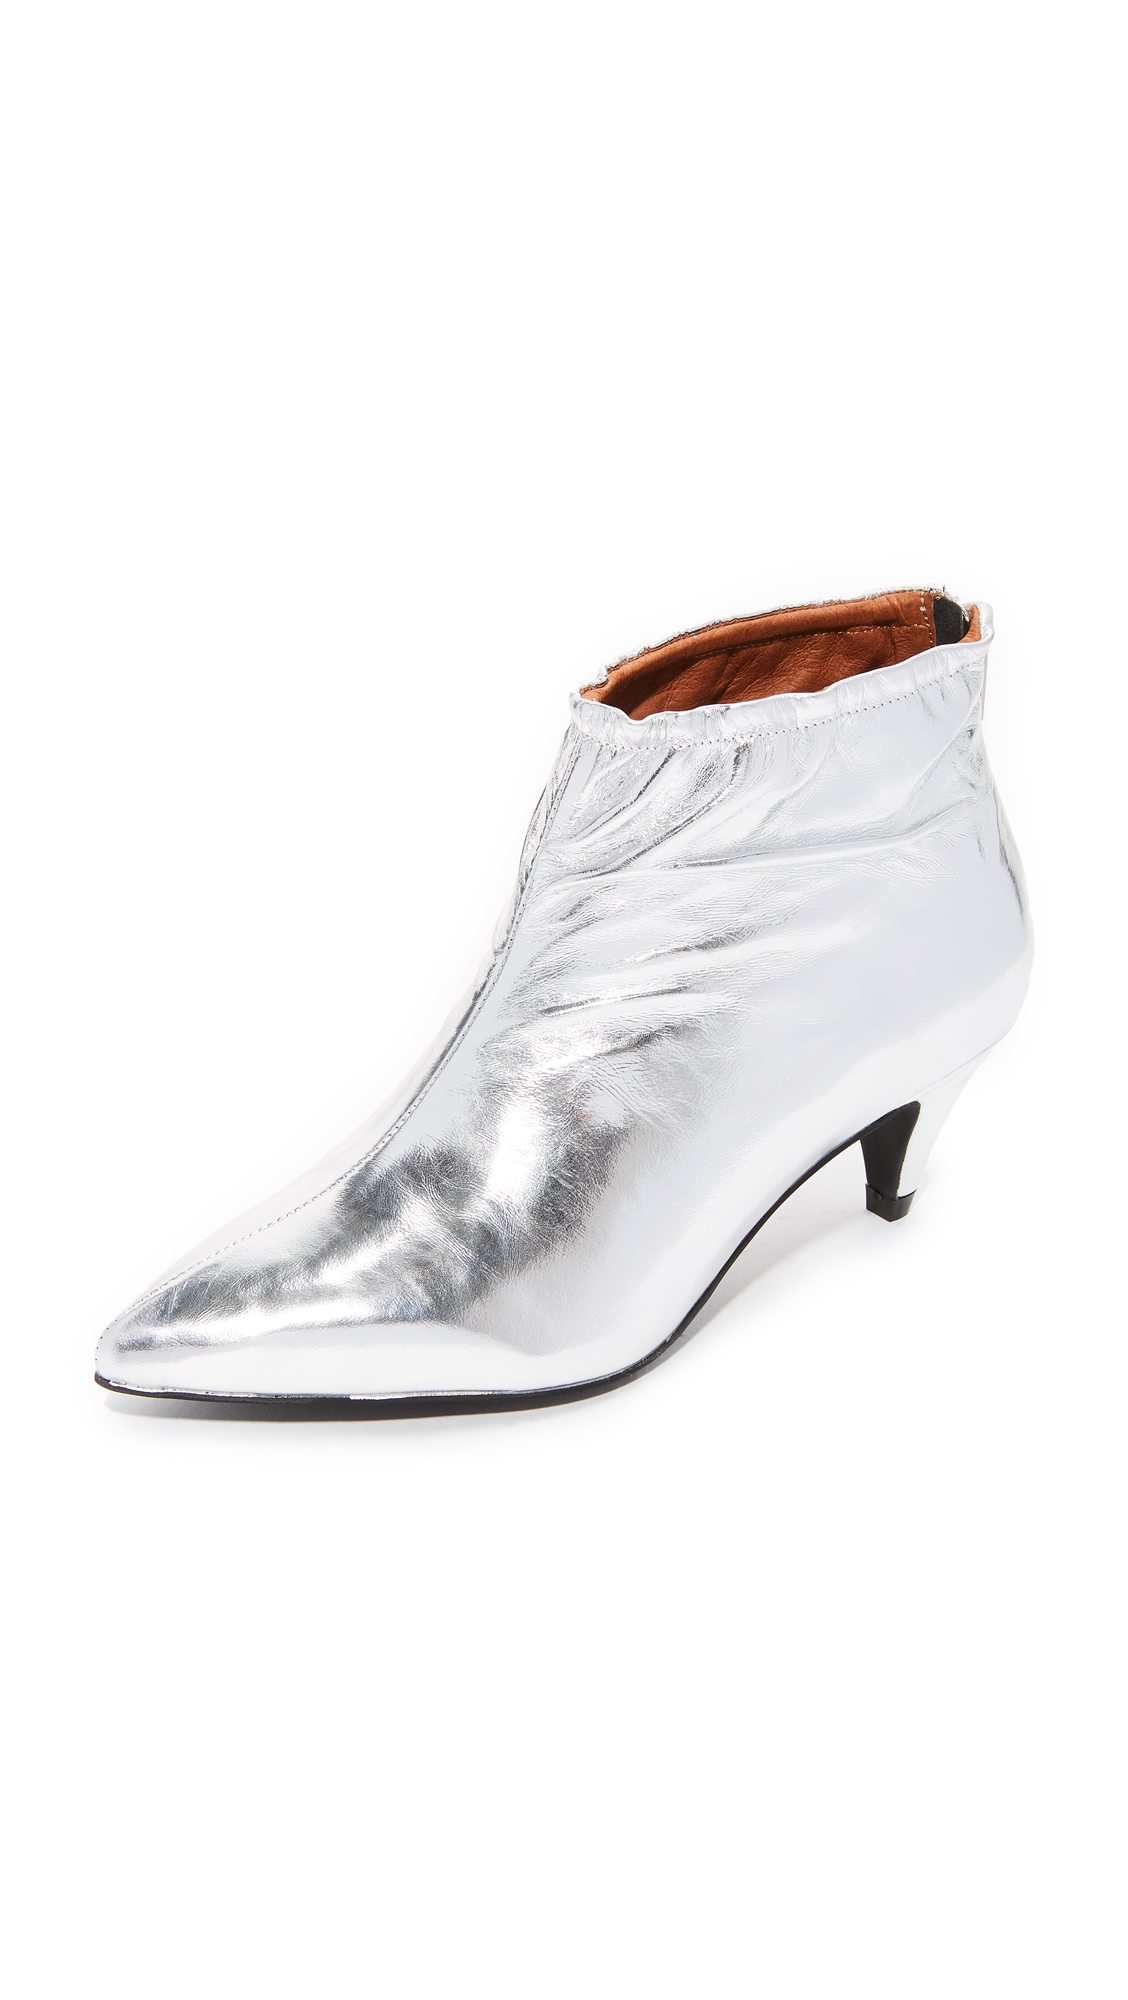 Jeffrey Campbell Zosia Low Heel Metallic Booties - Silver